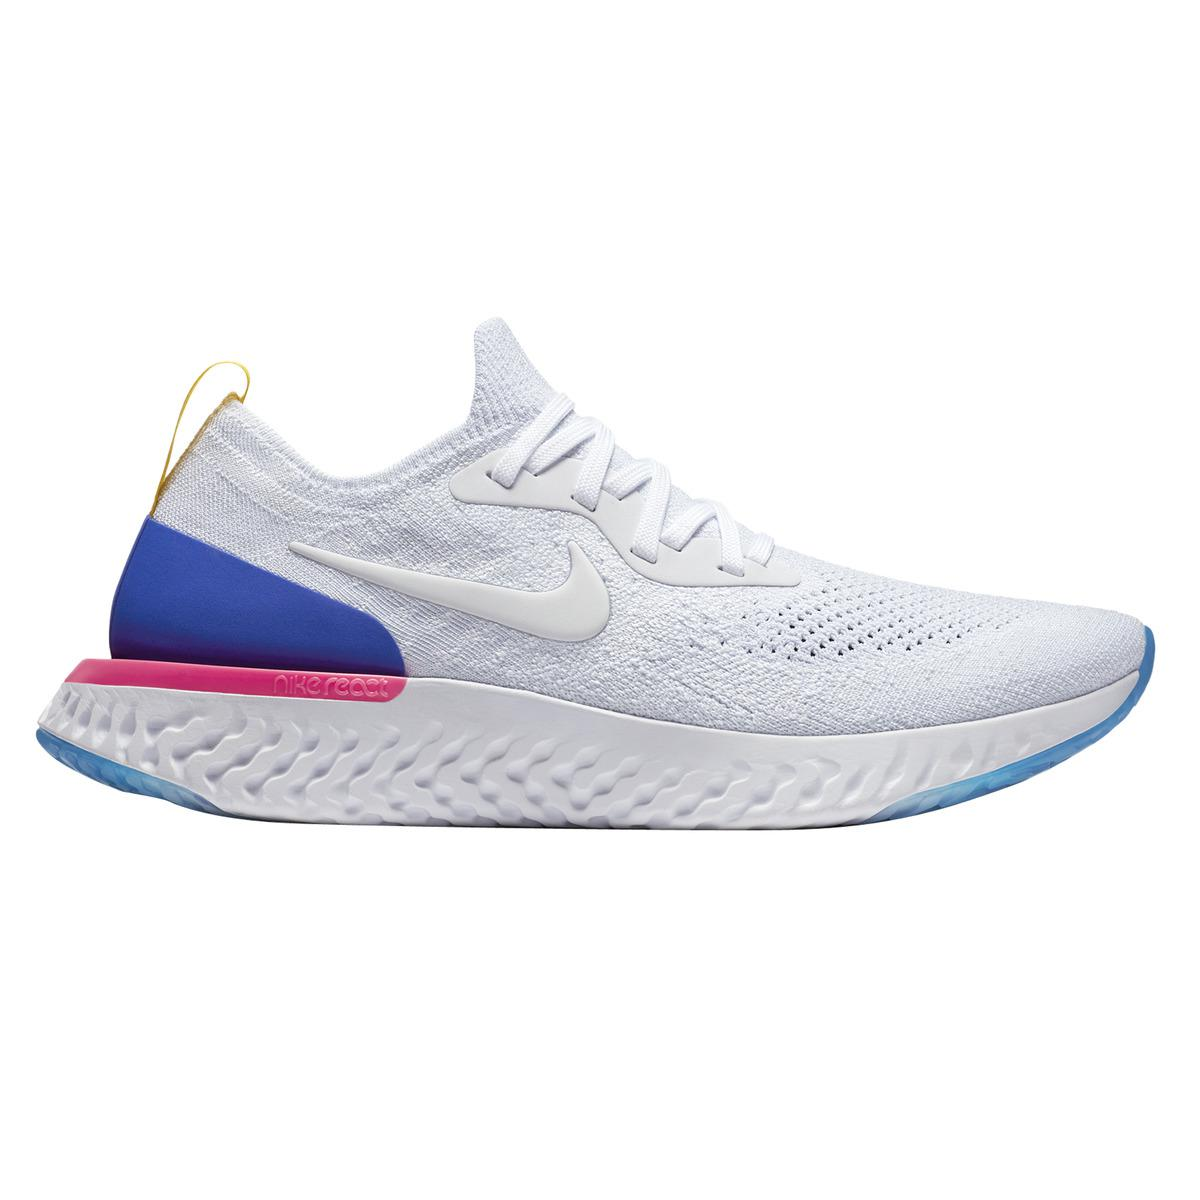 Nike. Men's Blue Epic React Flyknit Running Shoes